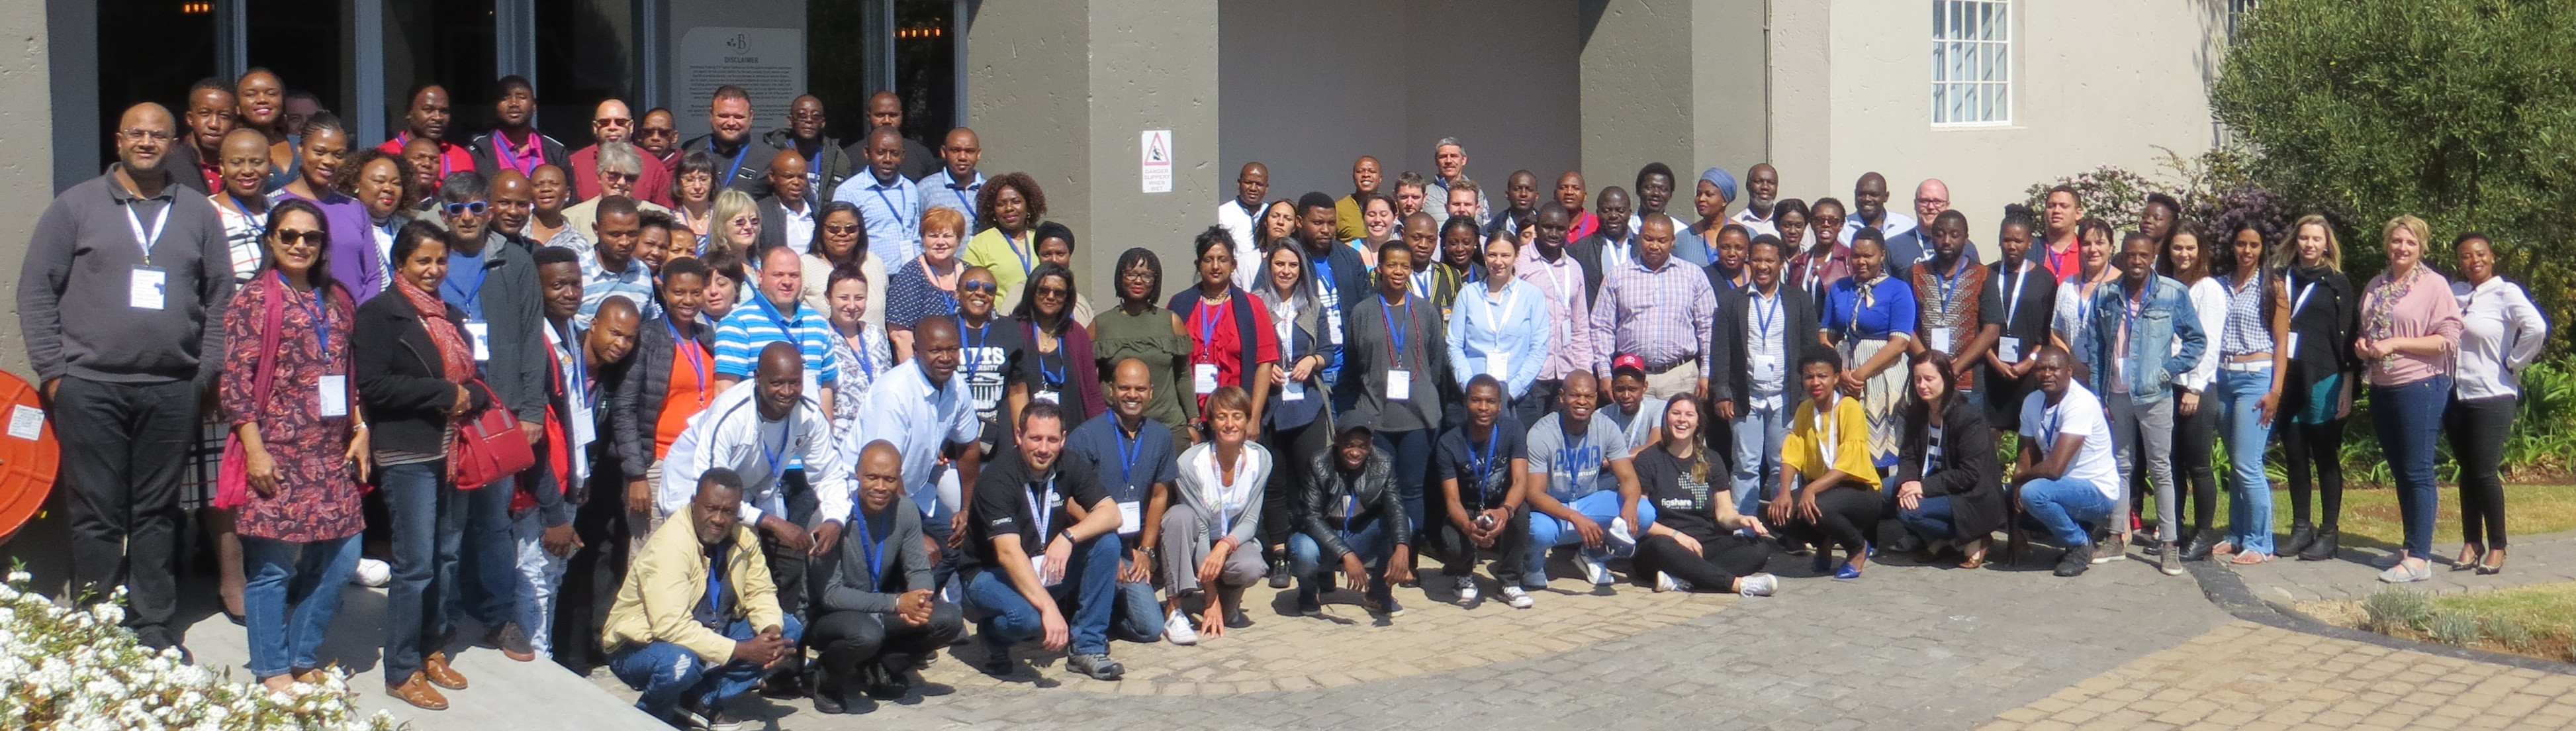 Community photo from CarpentryConnect Johannesburg  2018